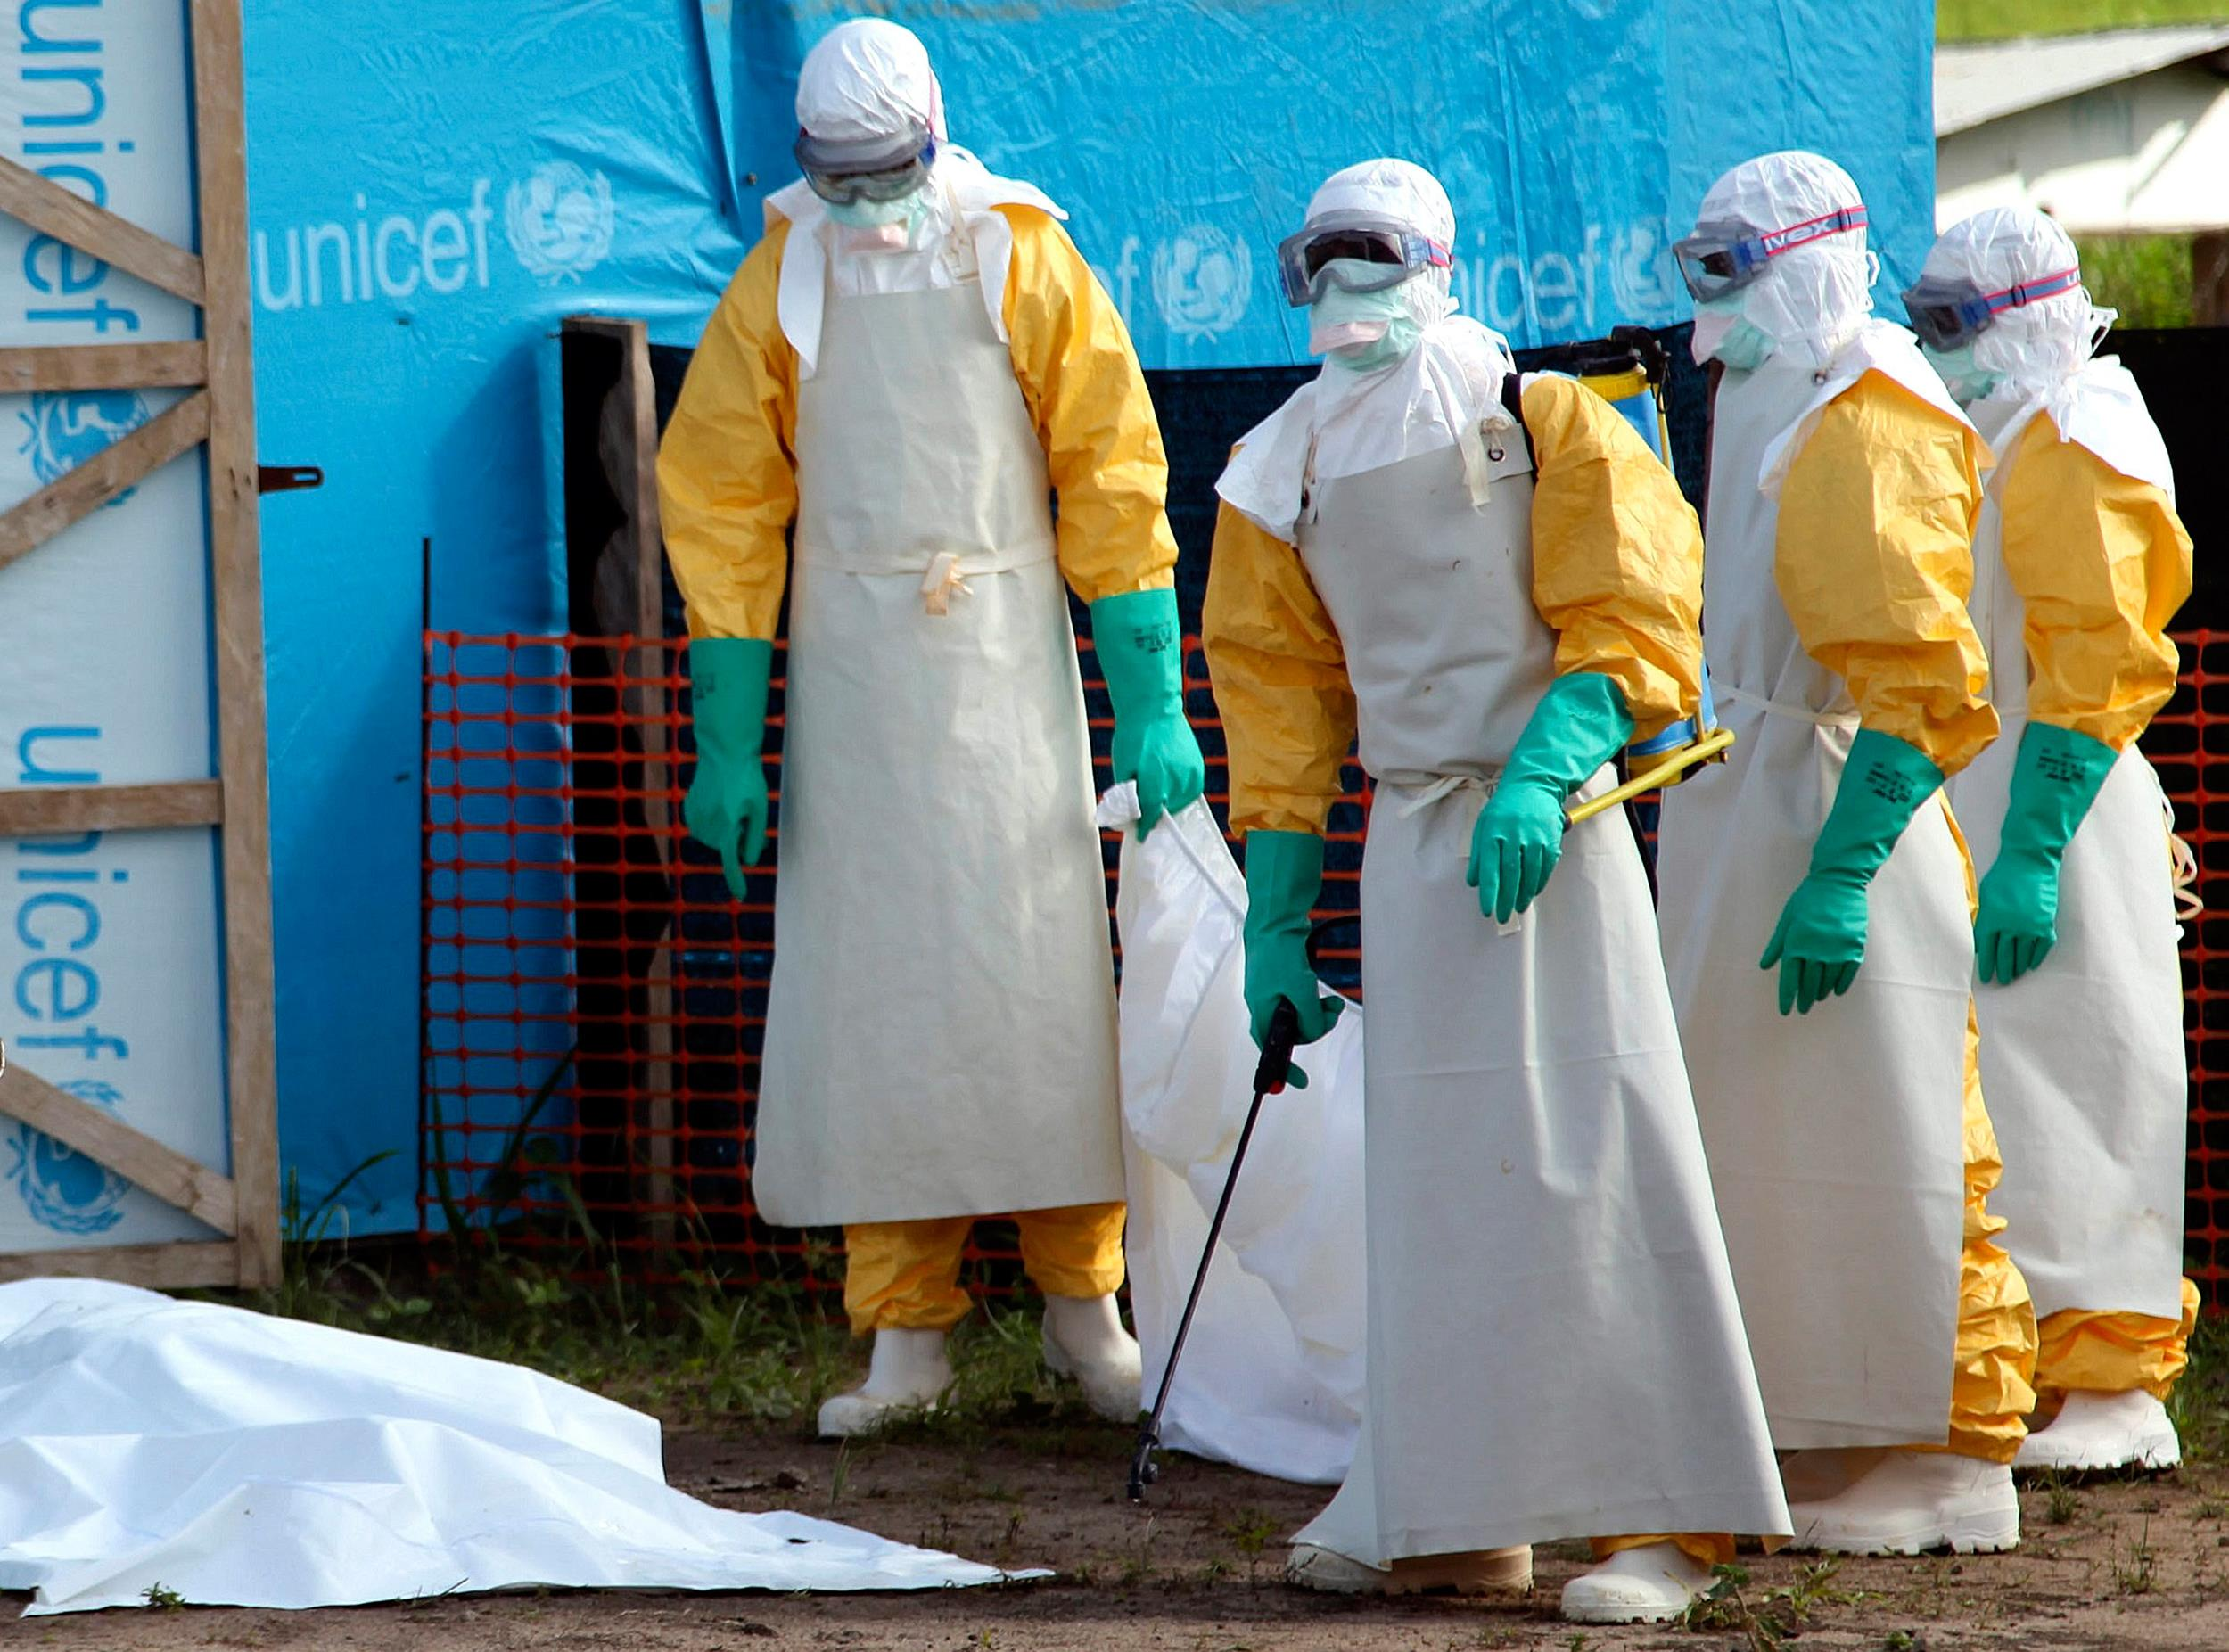 Image: Liberian health workers about to load the body of a woman who died from the Ebola virus into a pickup at the isolation unit in Foya, Lofa County, Liberia